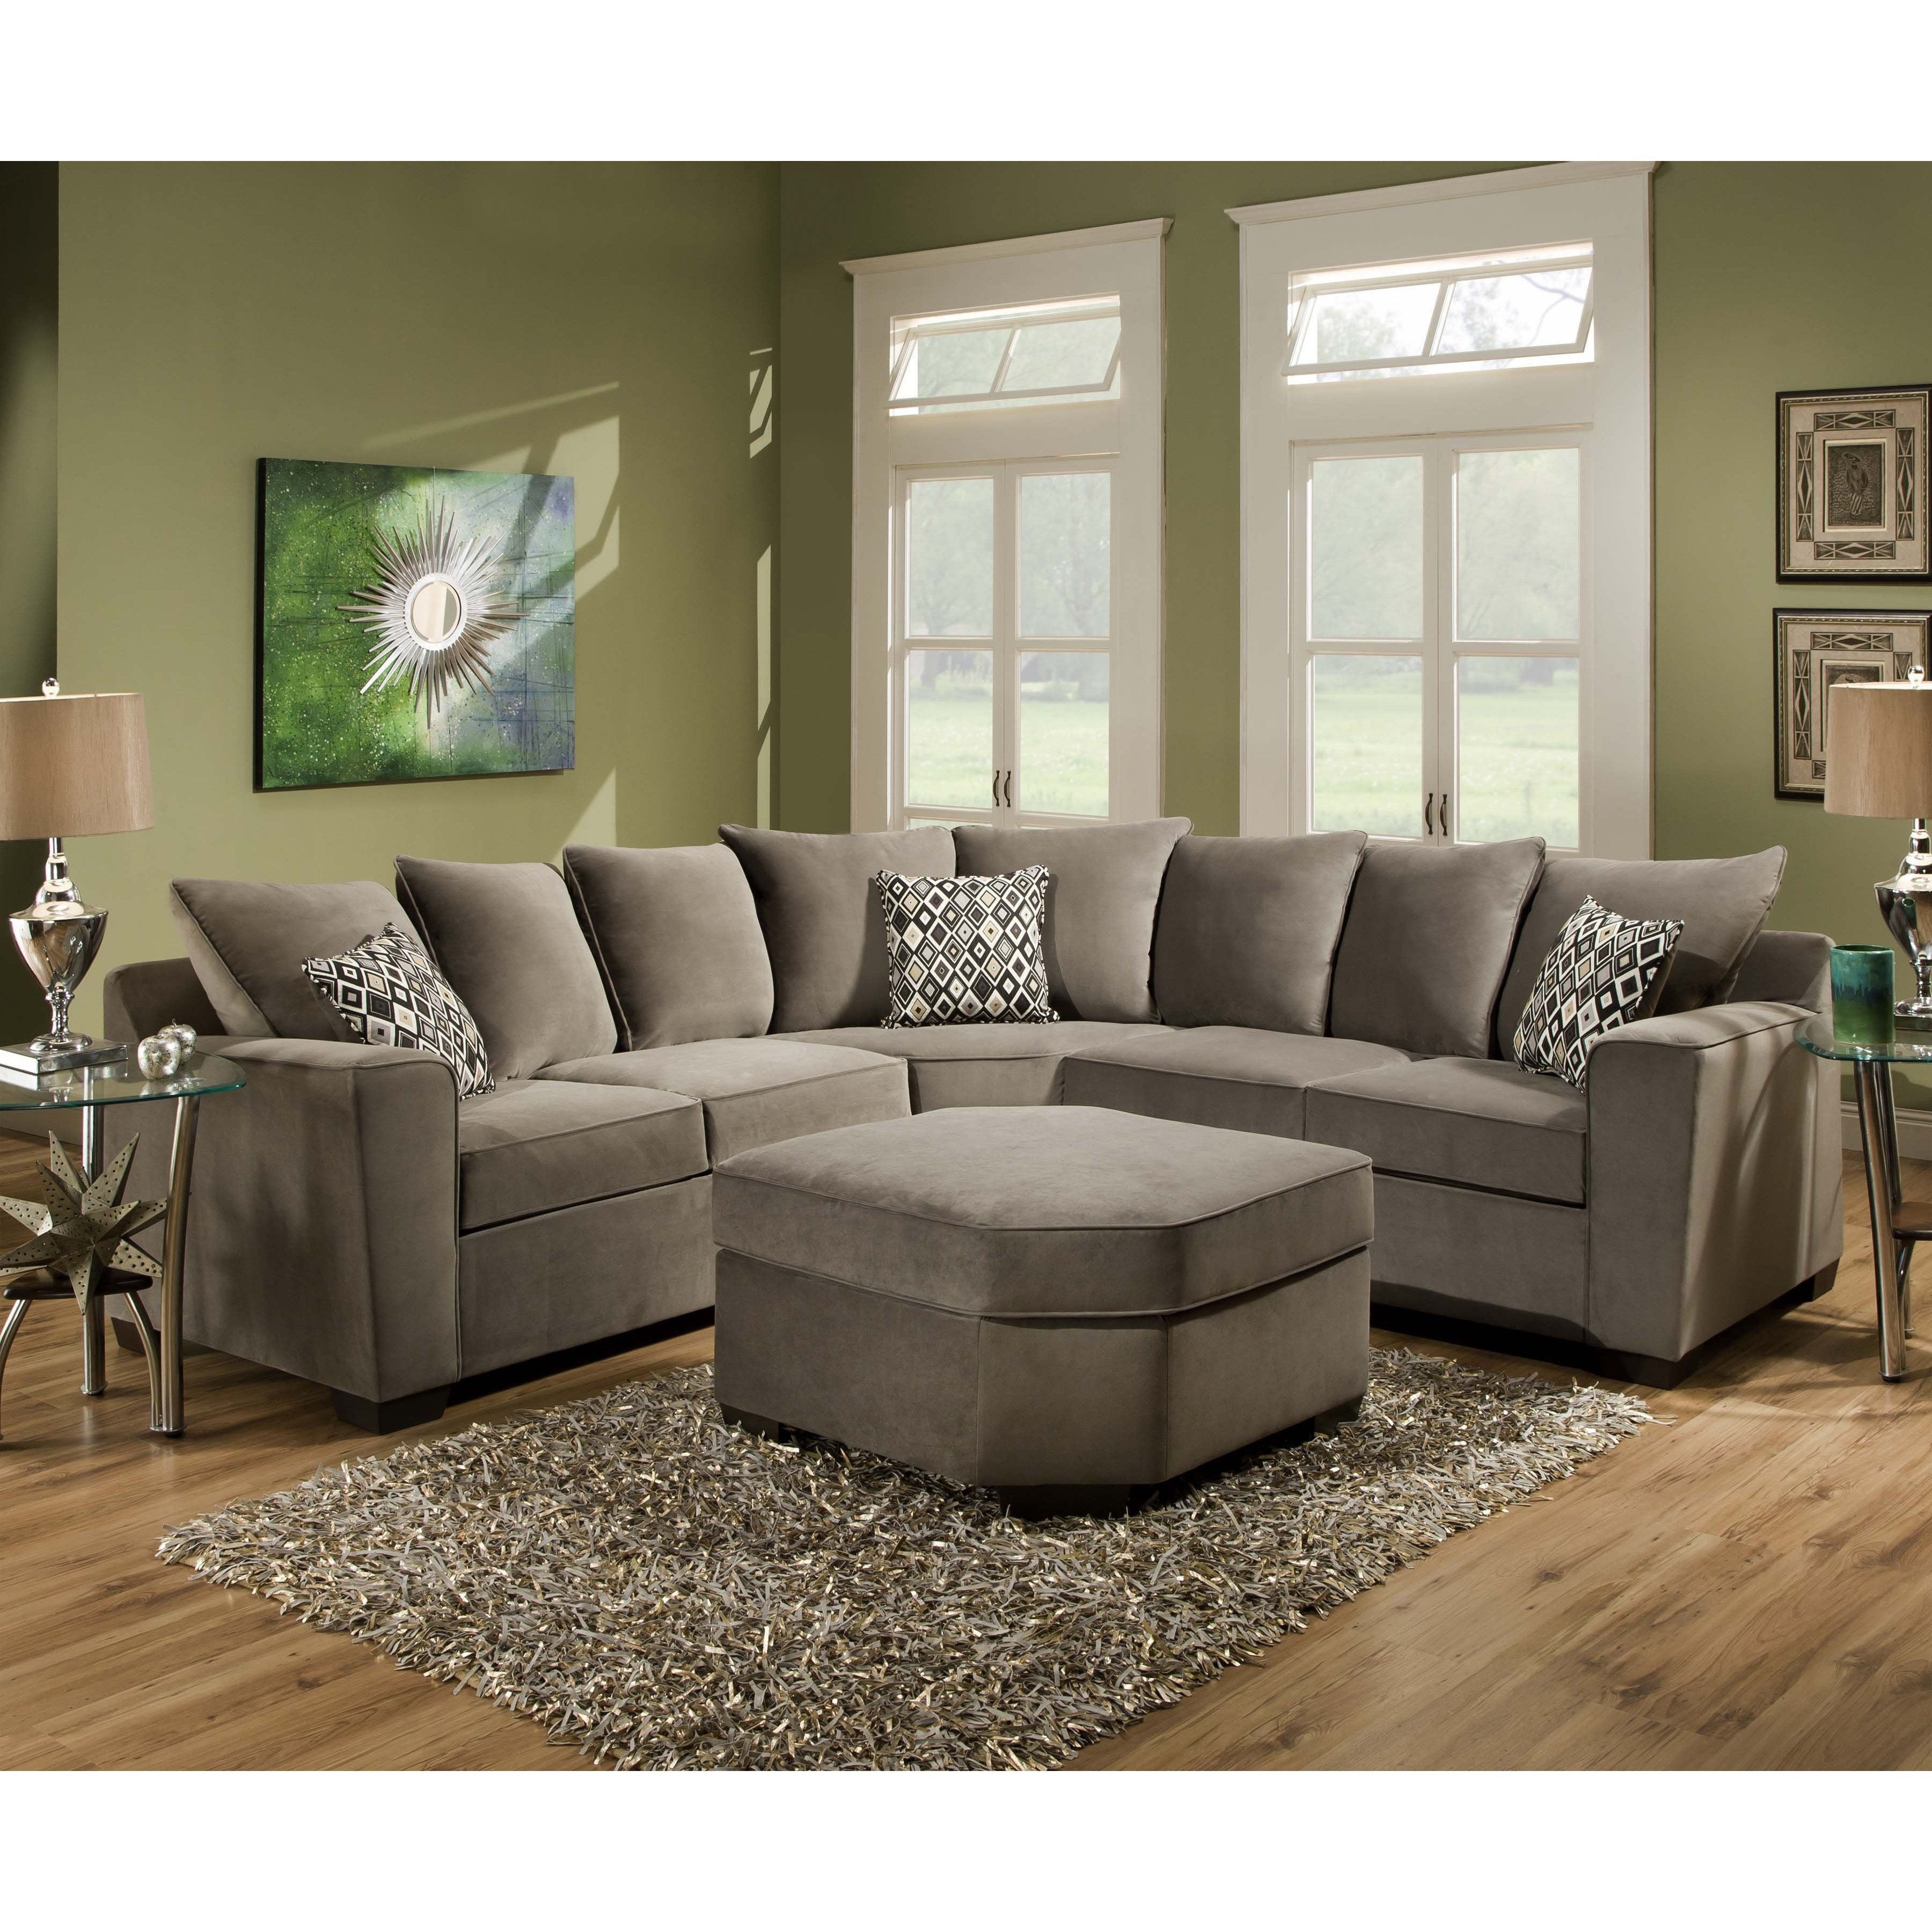 Fascinating 10 Foot Sectional Sofa 60 About Remodel Small Size Pertaining To 10 Foot Sectional Sofa (#10 of 12)